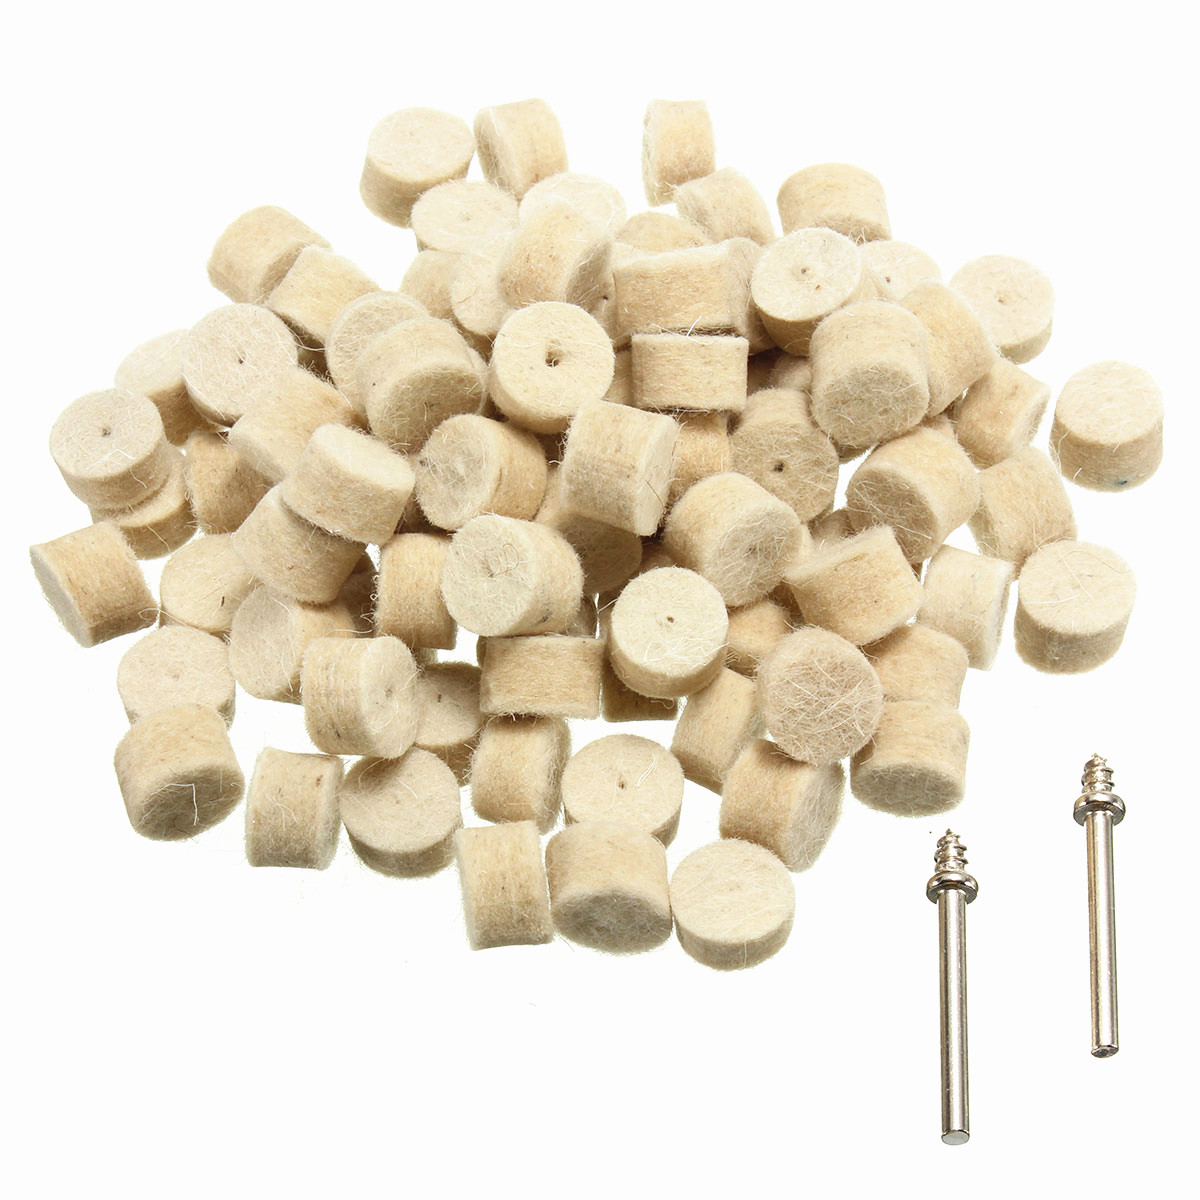 100Pcs 13mm/25mm Wool Felt Polishing Buffing Round Wheel with 2 Shank For Dremel